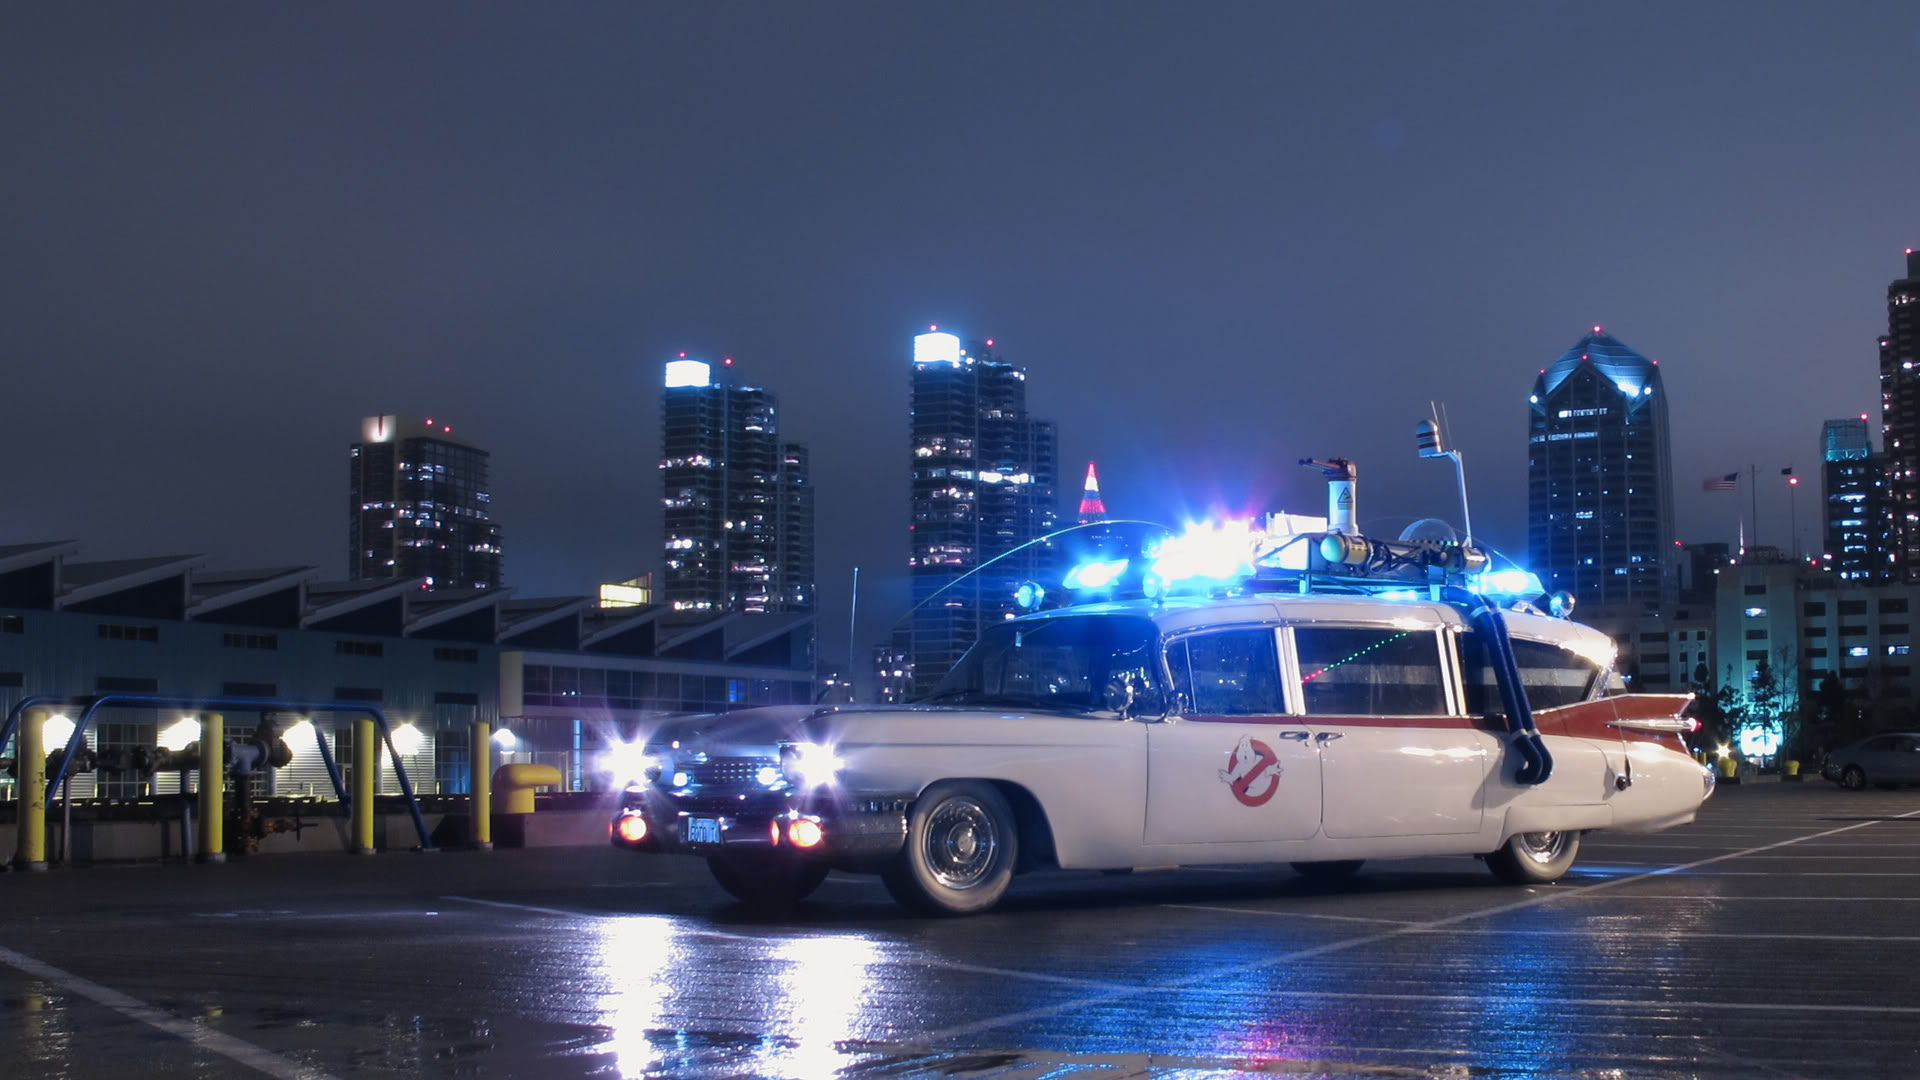 high-resolution ecto-1 wallpapers - ghostbusters fans